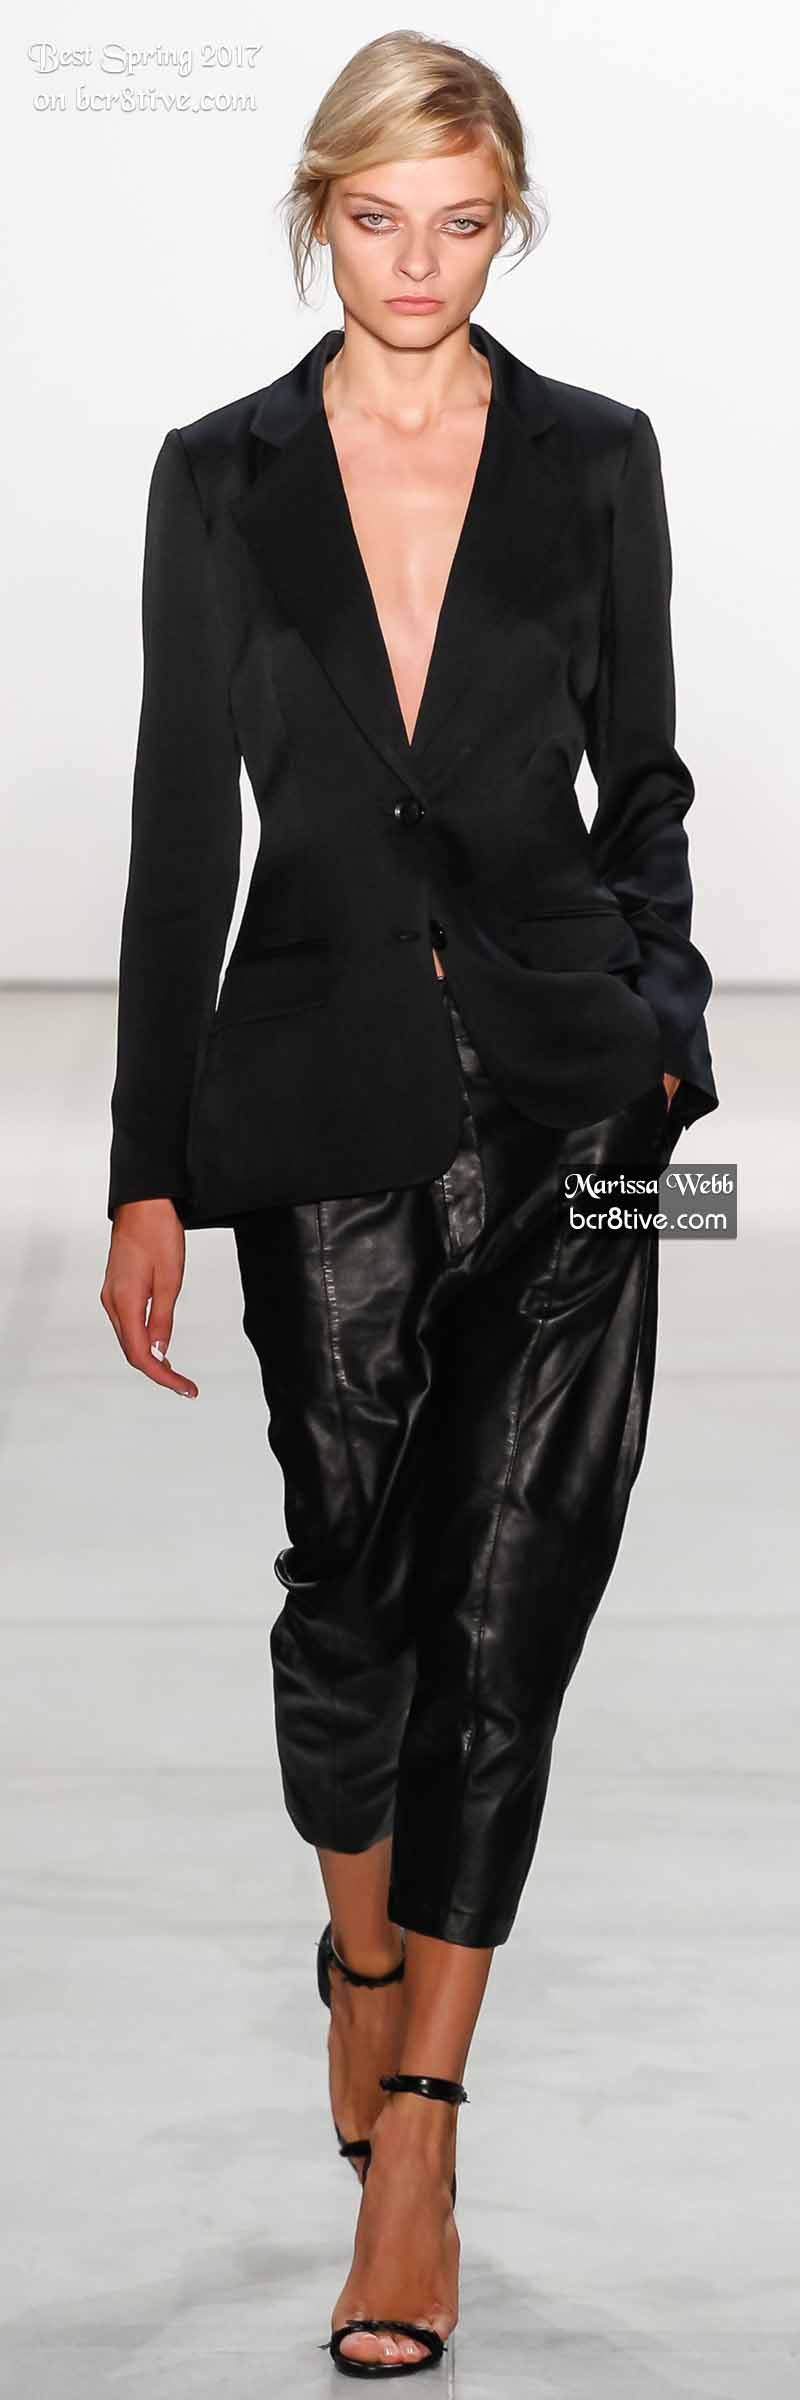 Marissa Webb - The Best Looks from New York Fashion Week Spring 2017